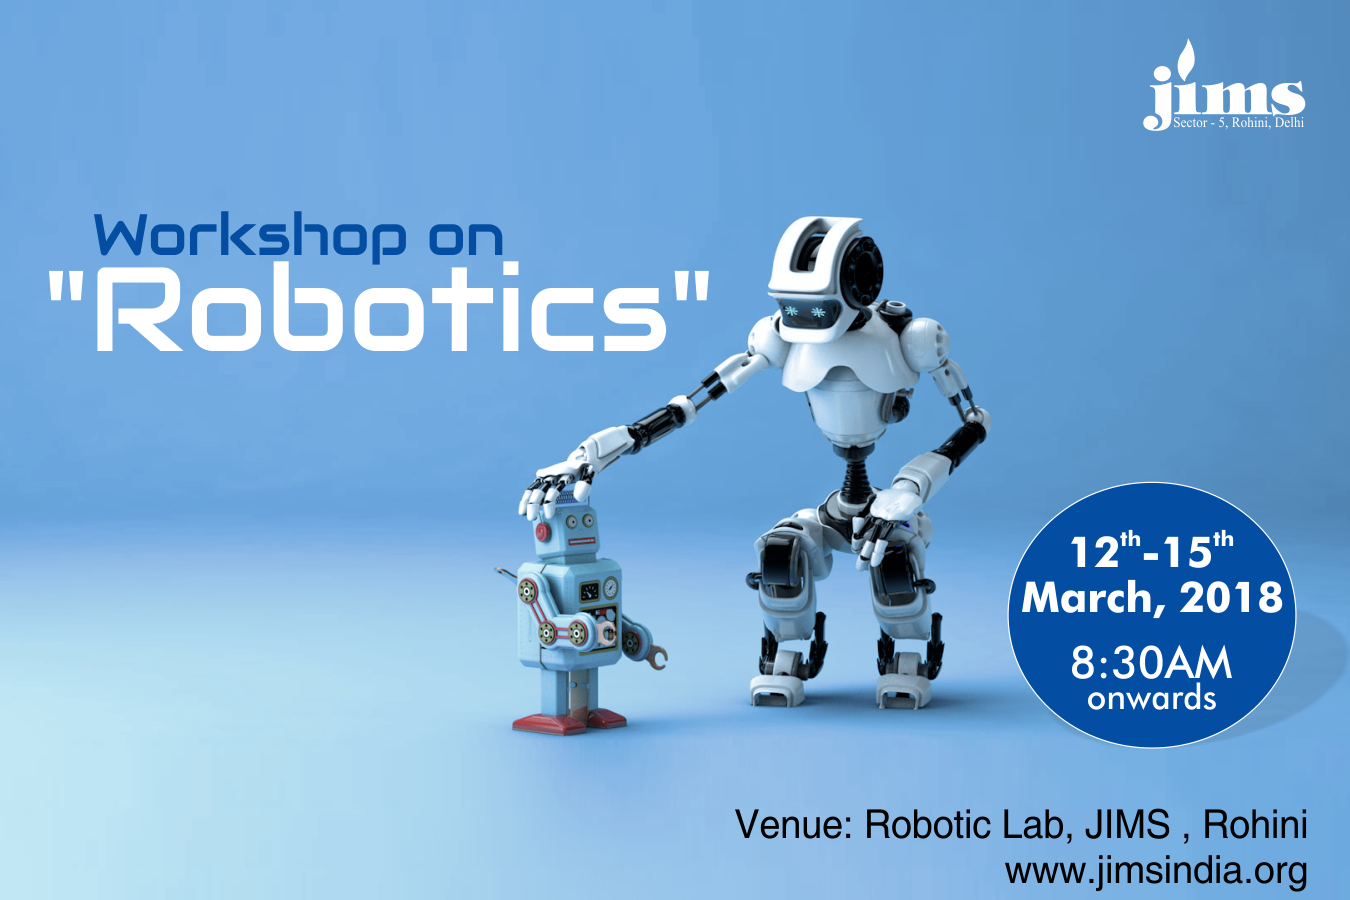 Robotics workshop at JIMS Rohini